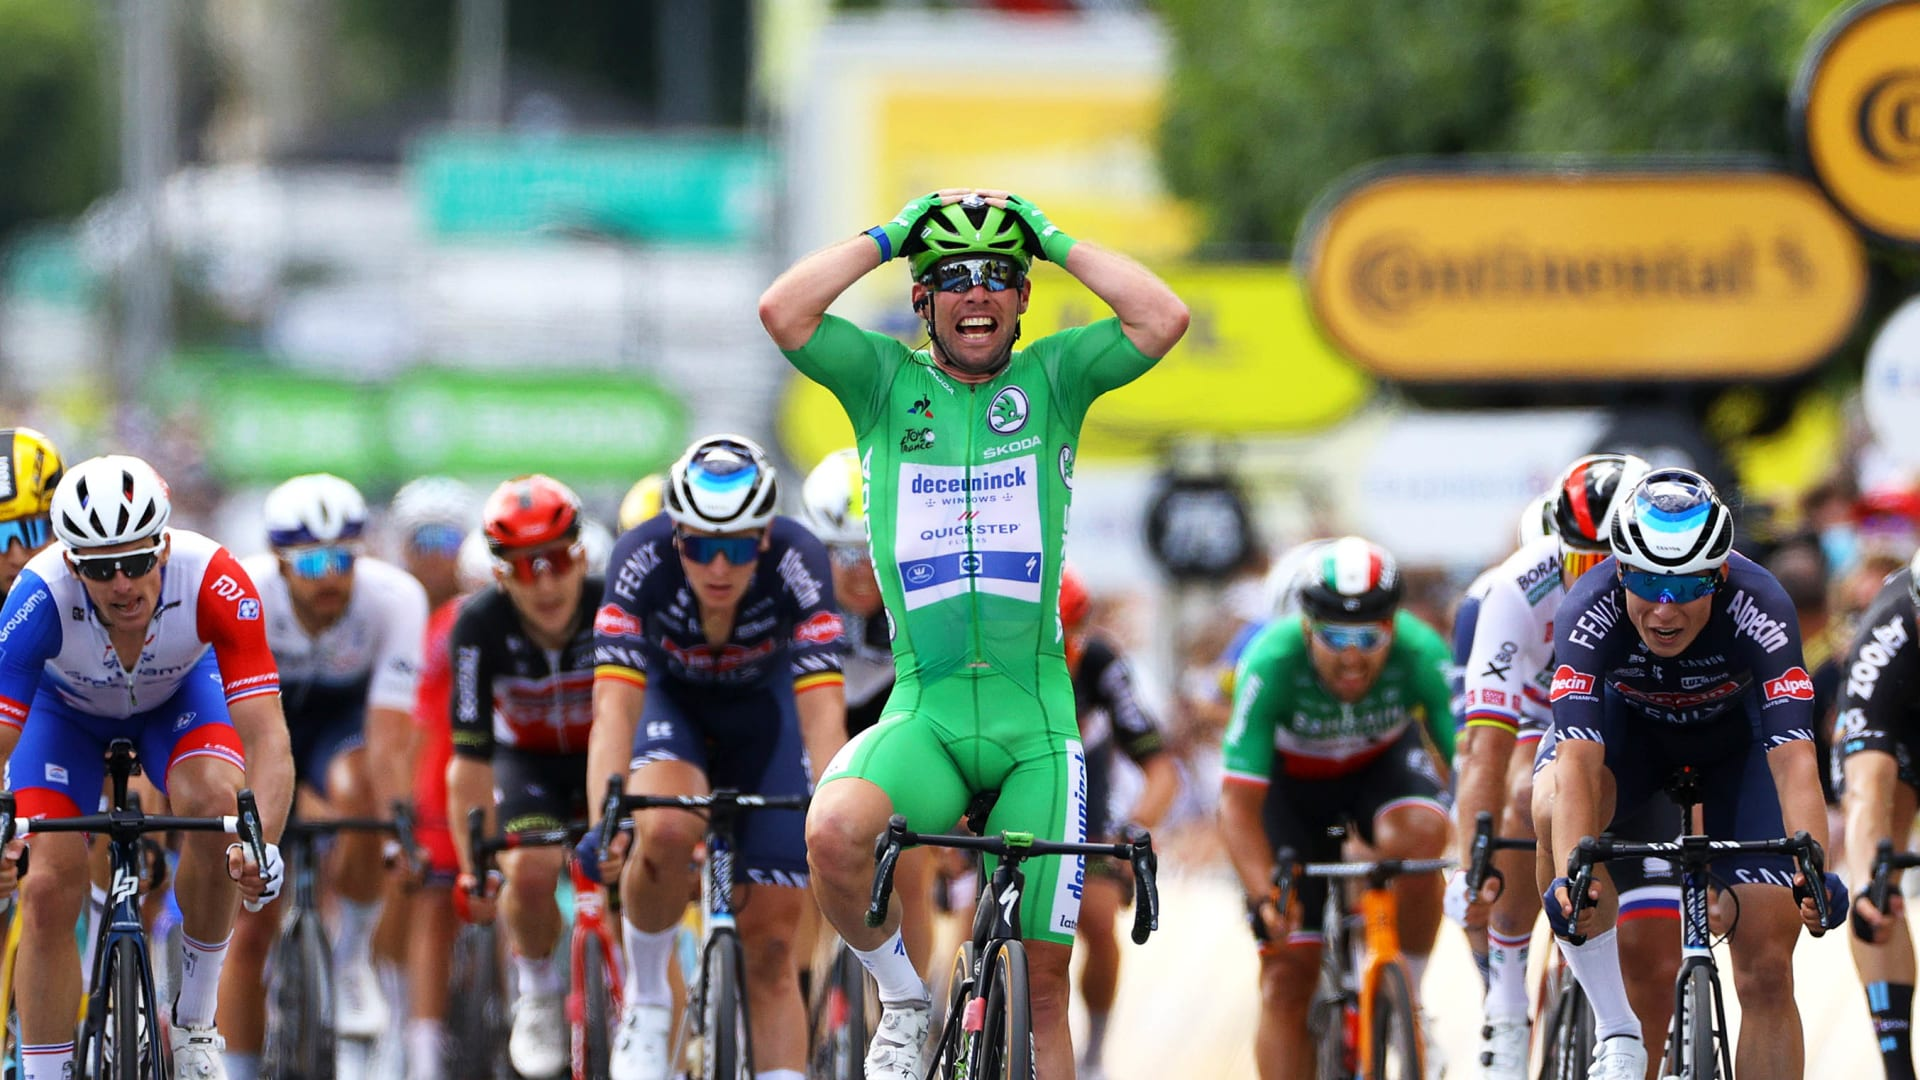 Mark Cavendish celebrates while crossing the finish line of the sixth stage of the Tour de France.